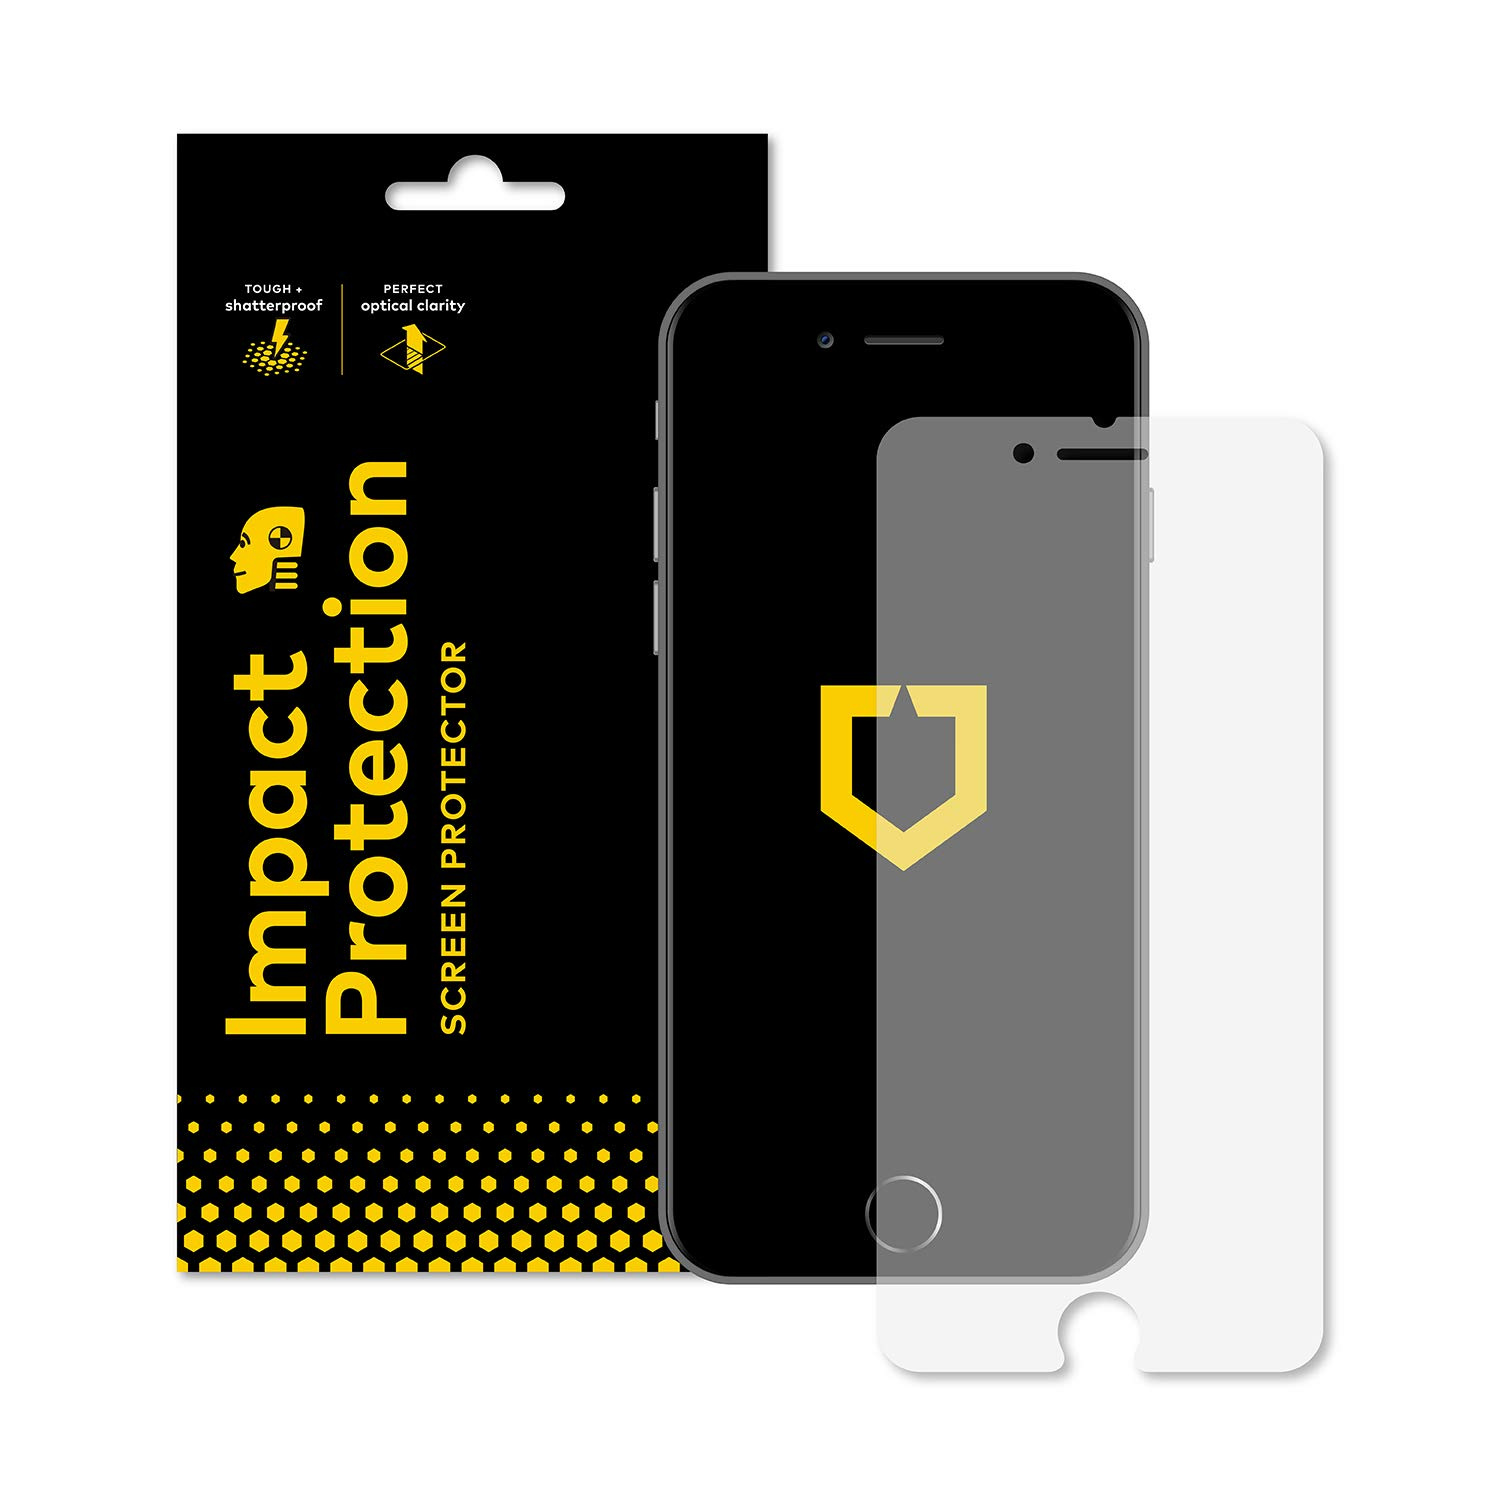 buy online f4ee1 8b91a RhinoShield Screen Protector for iPhone 8 / iPhone 7 [Impact Protection] |  Hammer Tested Impact Protection - Clear and Scratch Resistant Screen ...